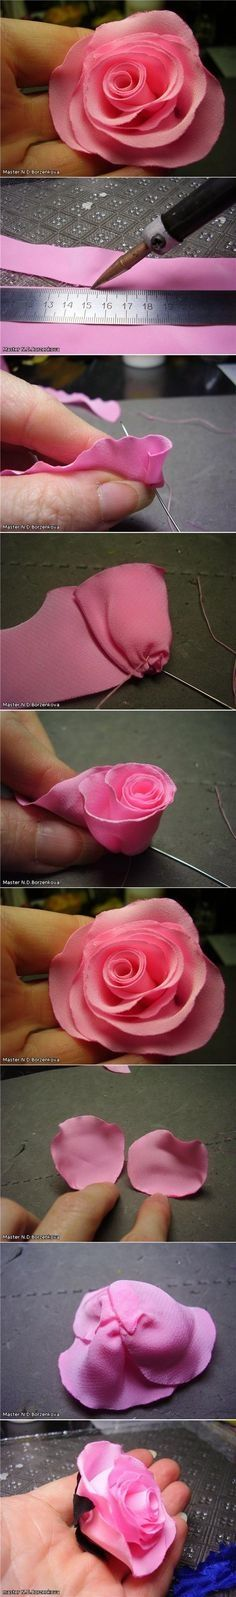 Diy sewing flowers flowers diy dew crafts home made easy crafts diy sewing flowers flowers diy dew crafts home made easy crafts craft idea crafts ideas diy solutioingenieria Gallery